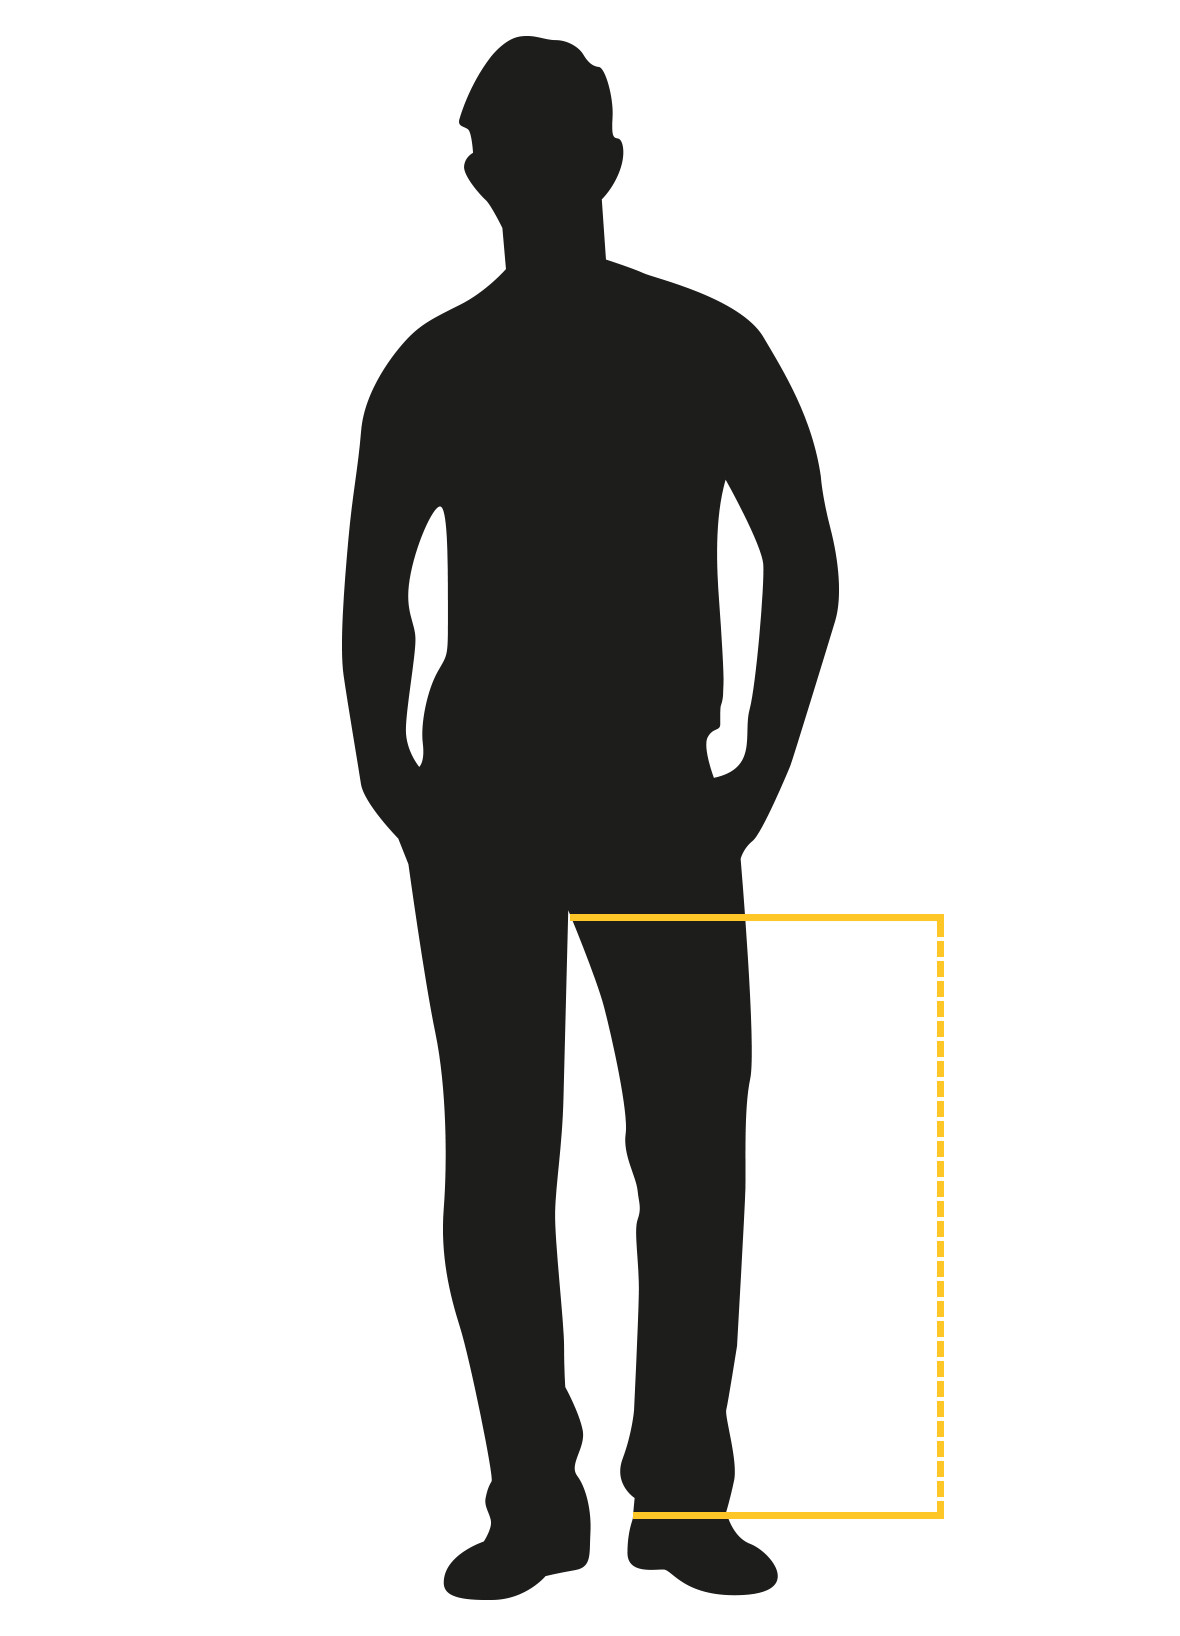 Mesure inside leg length